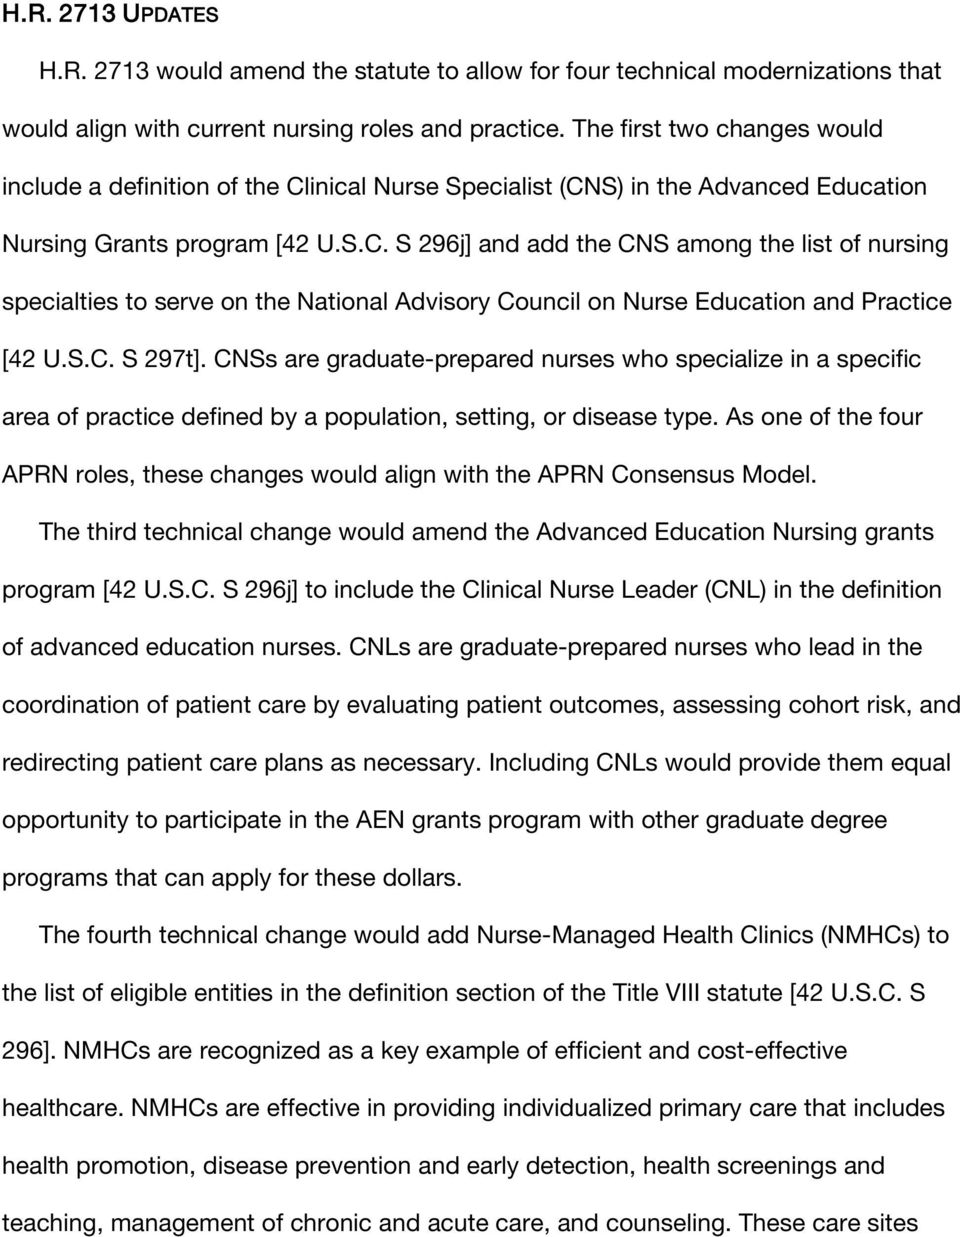 inical Nurse Specialist (CNS) in the Advanced Education Nursing Grants program [42 U.S.C. S 296j] and add the CNS among the list of nursing specialties to serve on the National Advisory Council on Nurse Education and Practice [42 U.